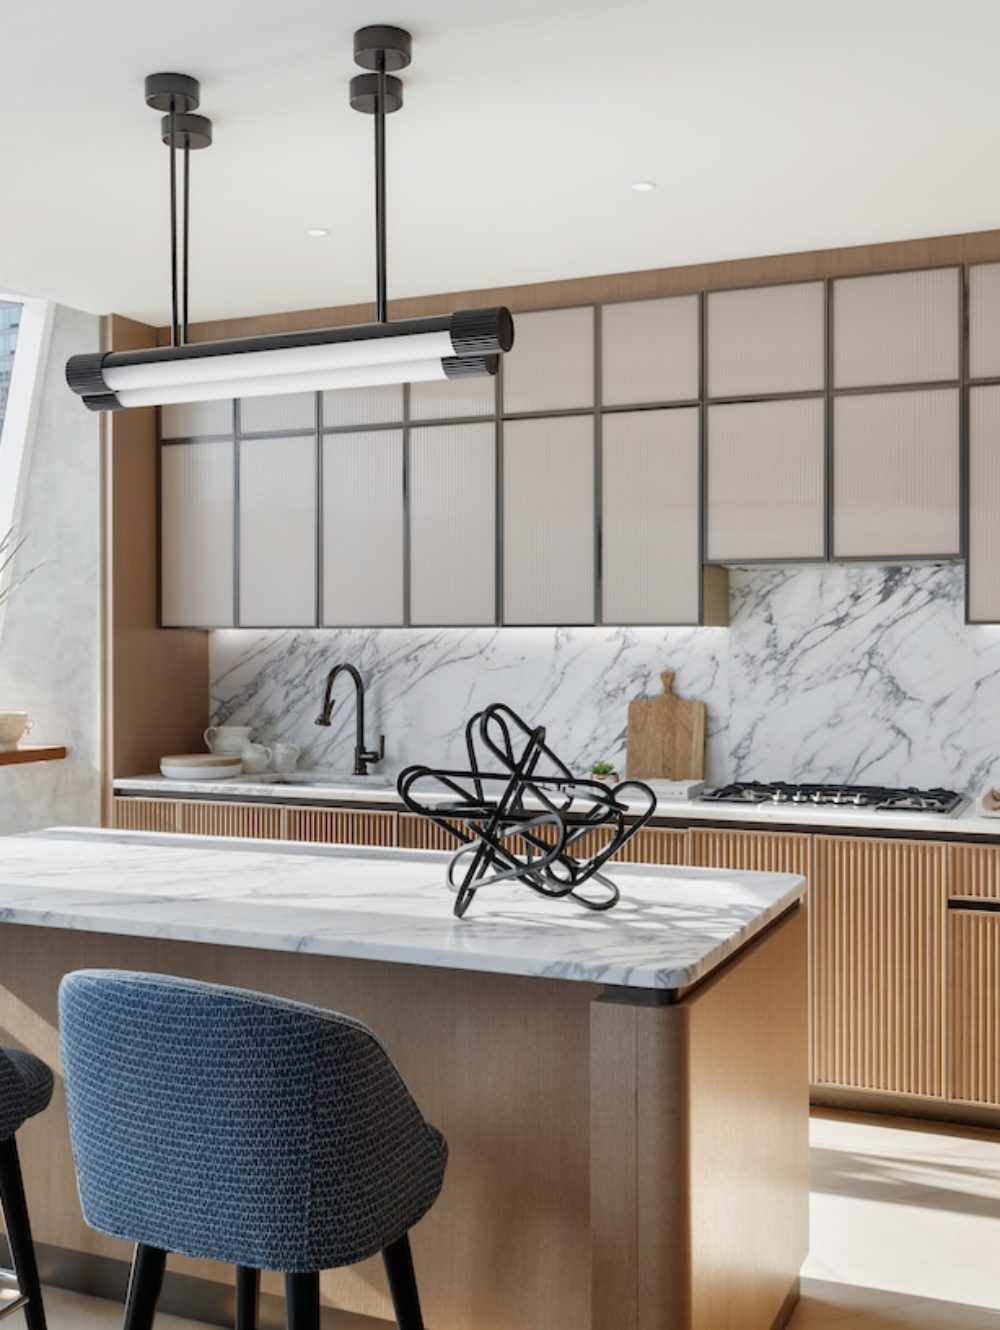 Kitchen at Lantern House luxury condos in NYC. Hardwood floors, center island, white countertops, and natural wood cabinets..